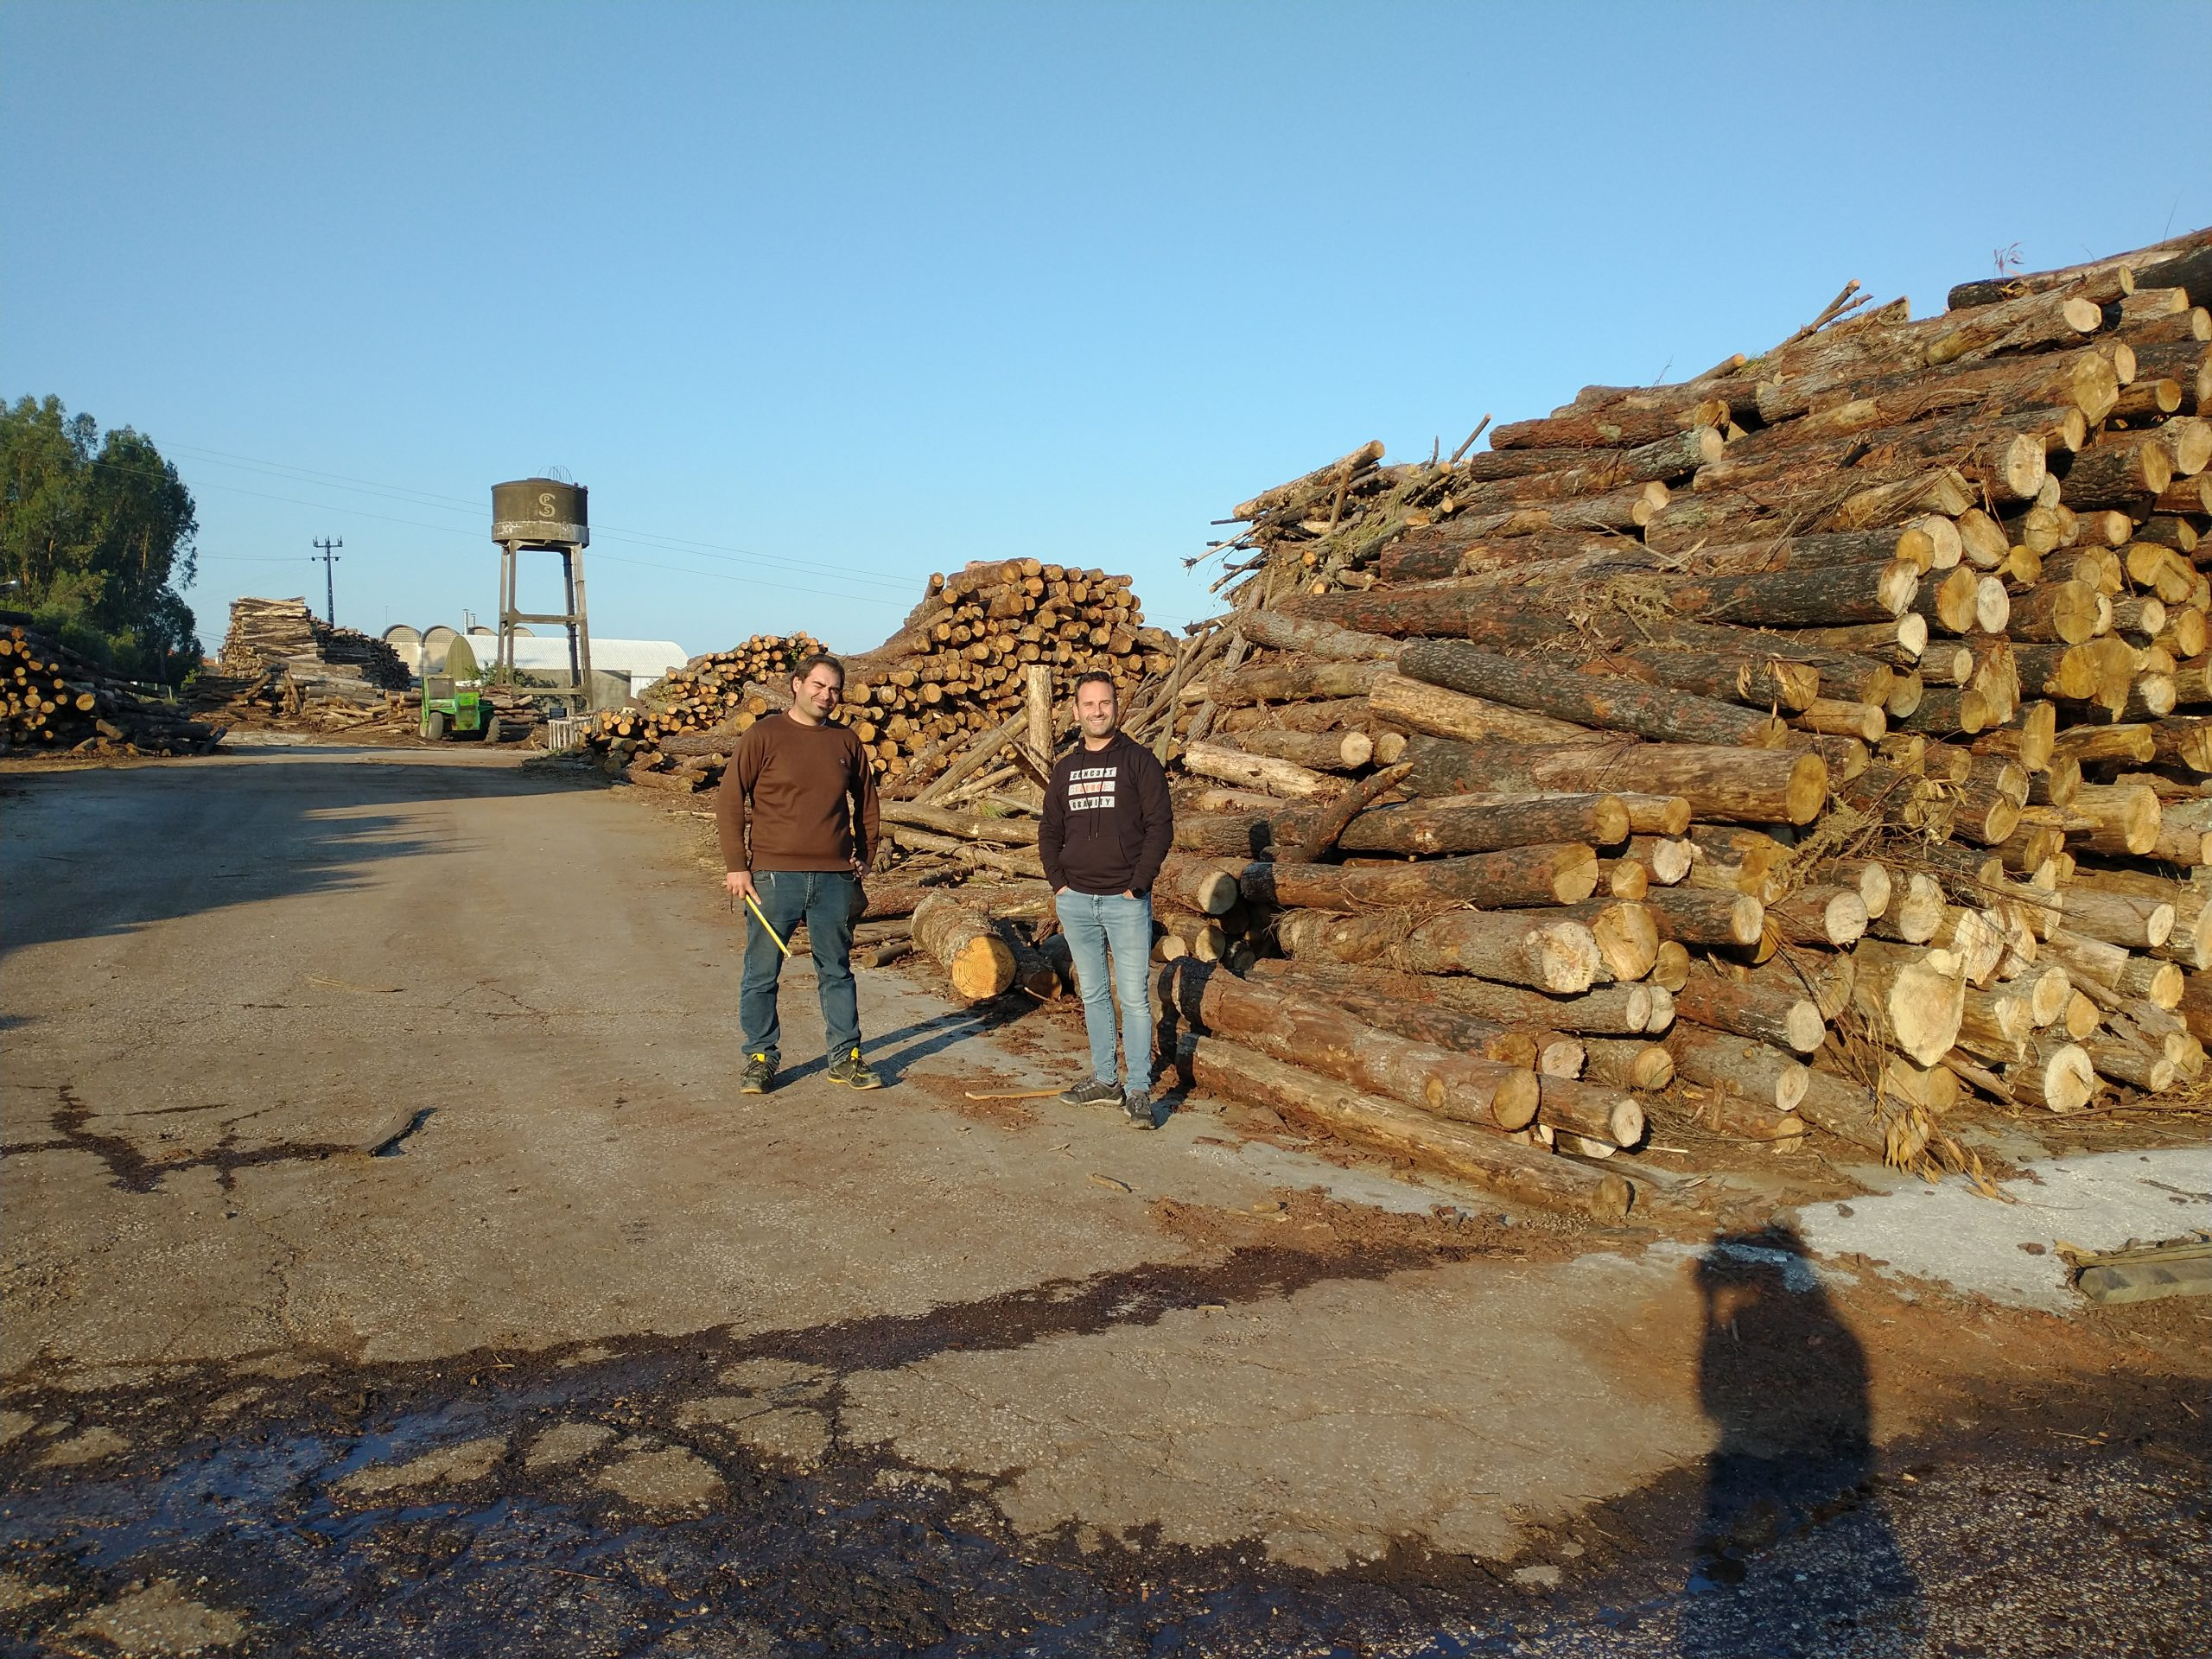 the owner and the engineer of the lumberyard